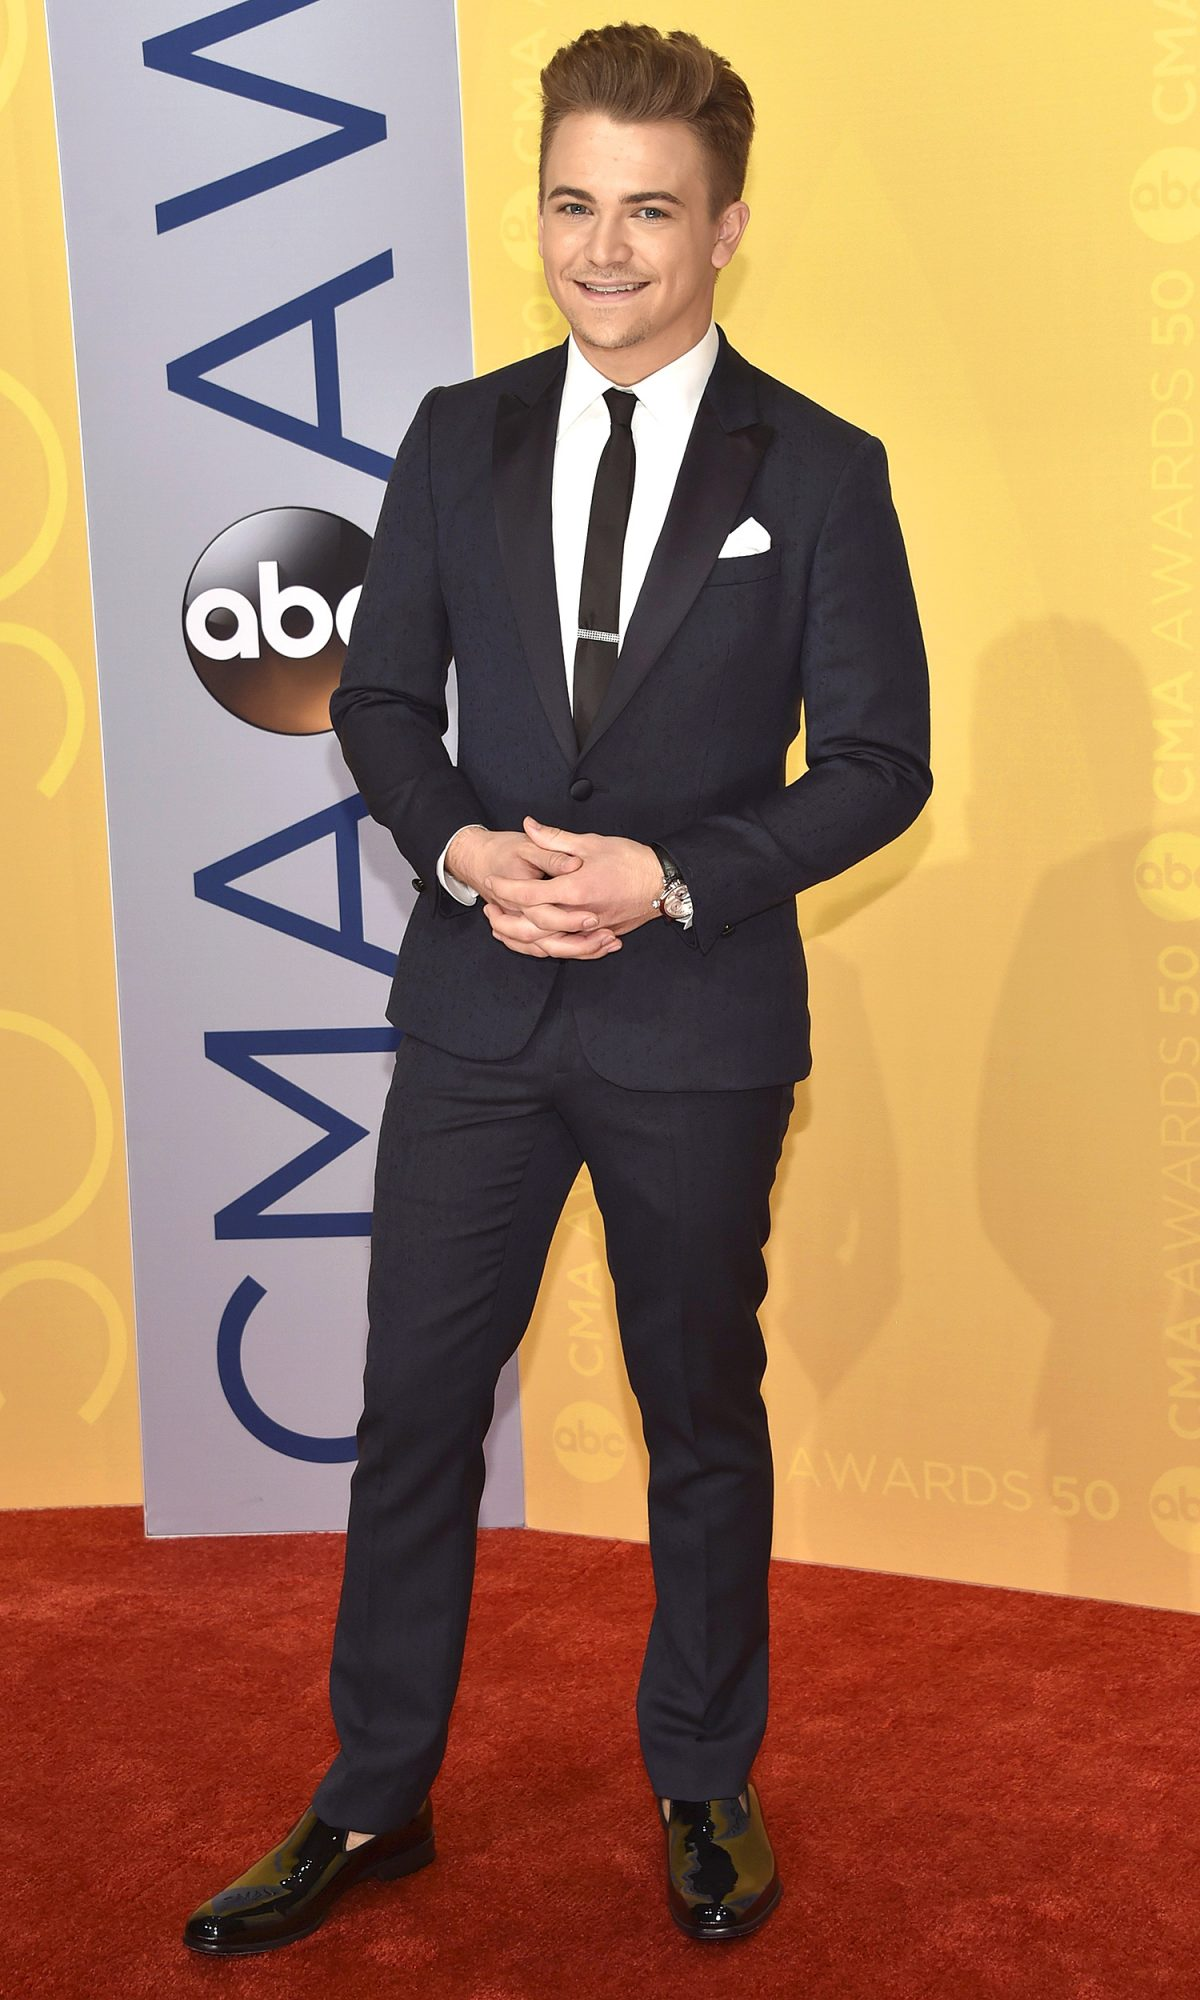 Hunter Hayes arrives at the 50th annual CMA Awards at the Bridgestone Arena on Wednesday, Nov. 2, 2016, in Nashville, Tenn. (Photo by Evan Agostini/Invision/AP)